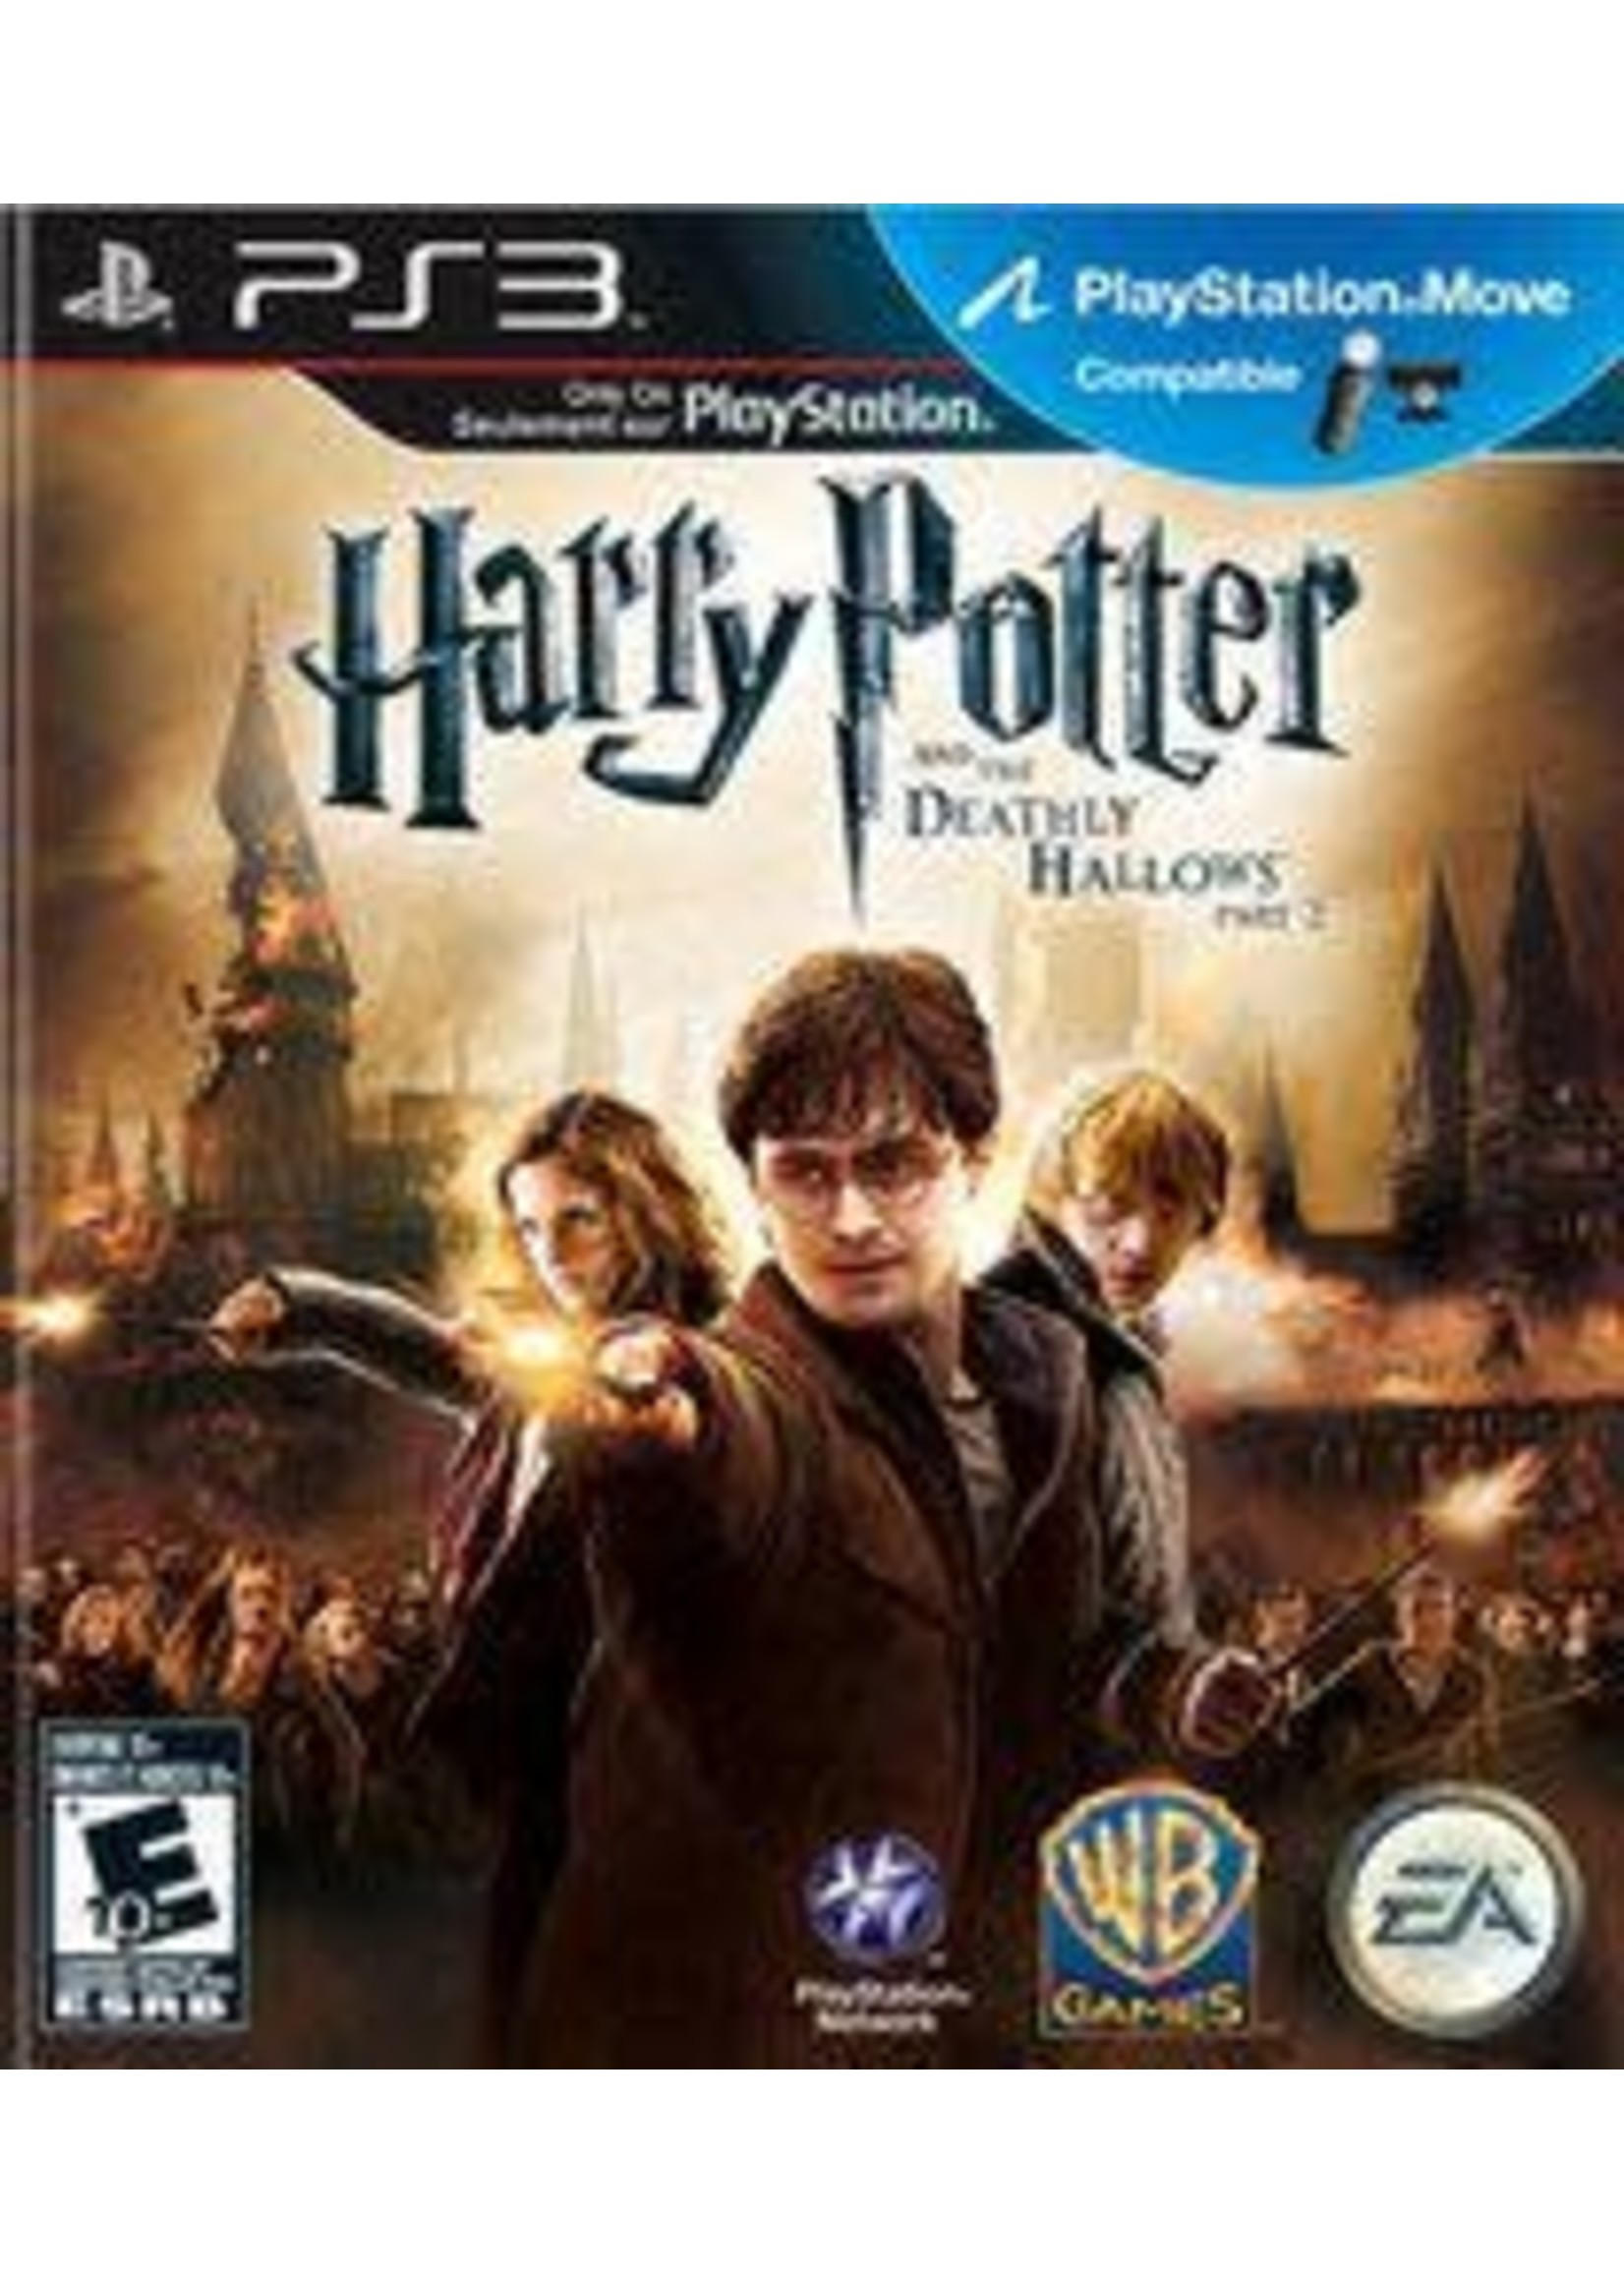 Harry Potter And The Deathly Hallows: Part 2 Playstation 3